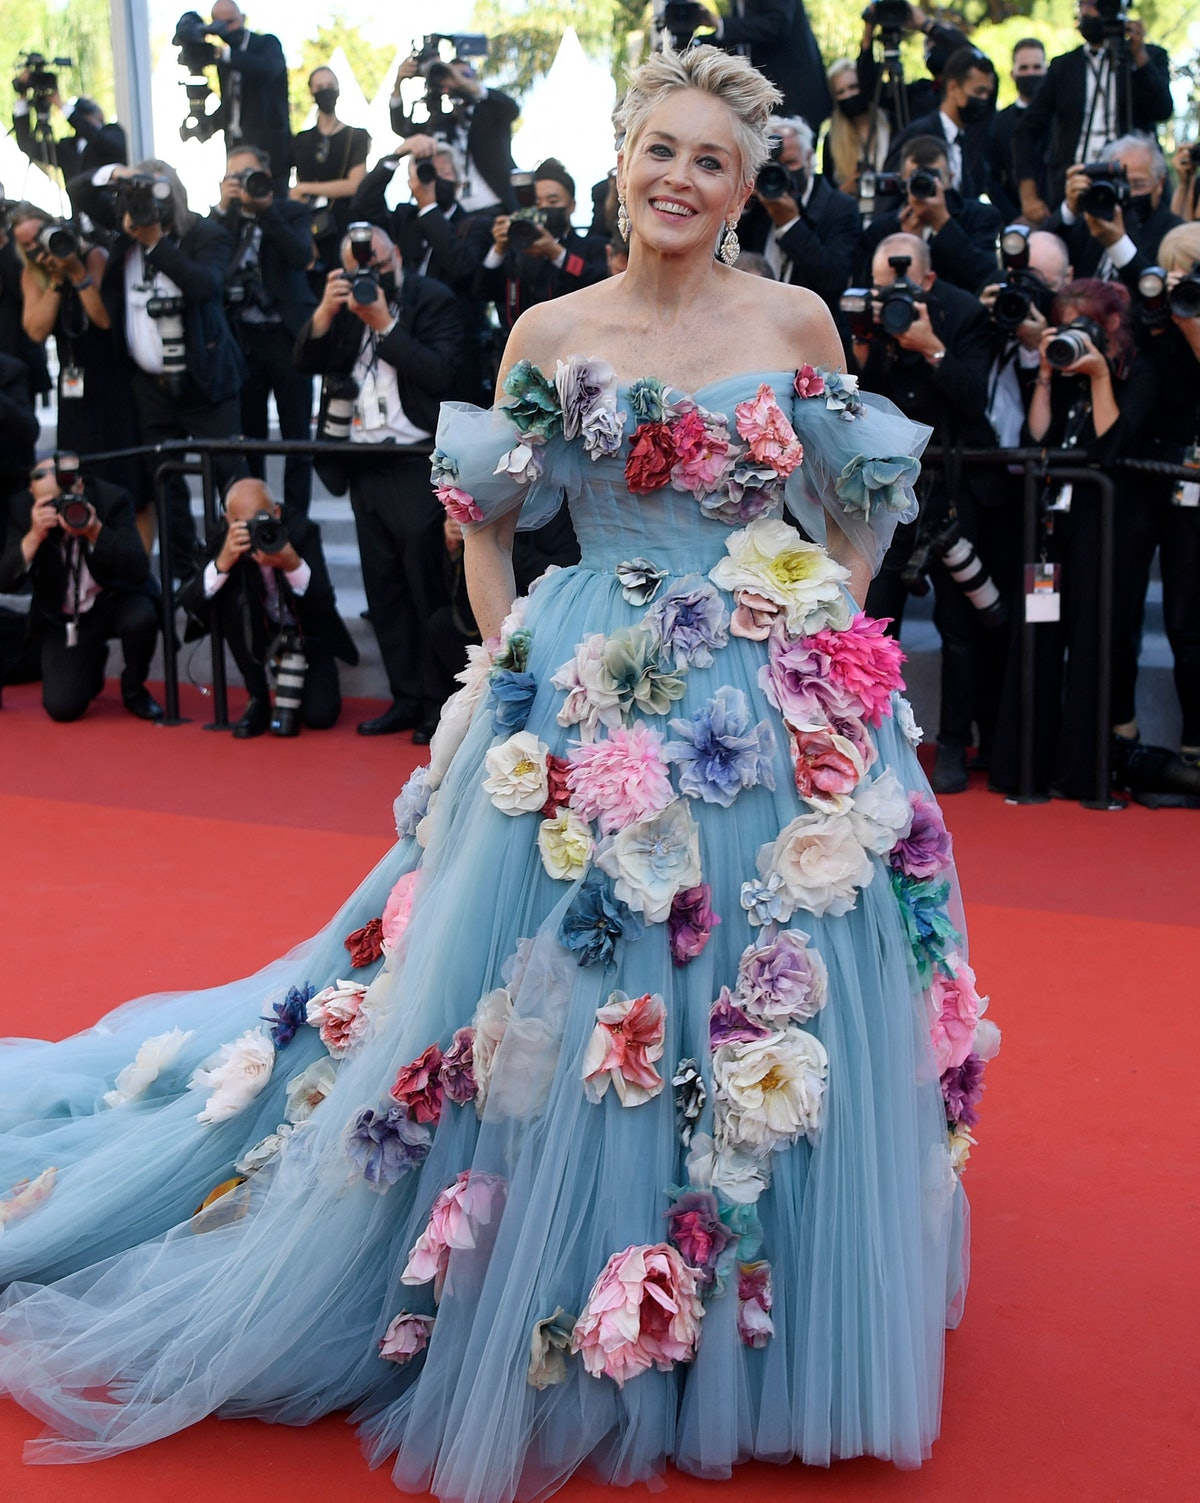 """US actress Sharon Stone arrives for the screening of the film """"A Felesegem Tortenete"""" (The Story Of My Wife) at the 74th edition of the Cannes Film Festival in Cannes, southern France, on July 14, 2021. (Photo by CHRISTOPHE SIMON / AFP) (Photo by CHRISTOPHE SIMON/AFP via Getty Images)"""